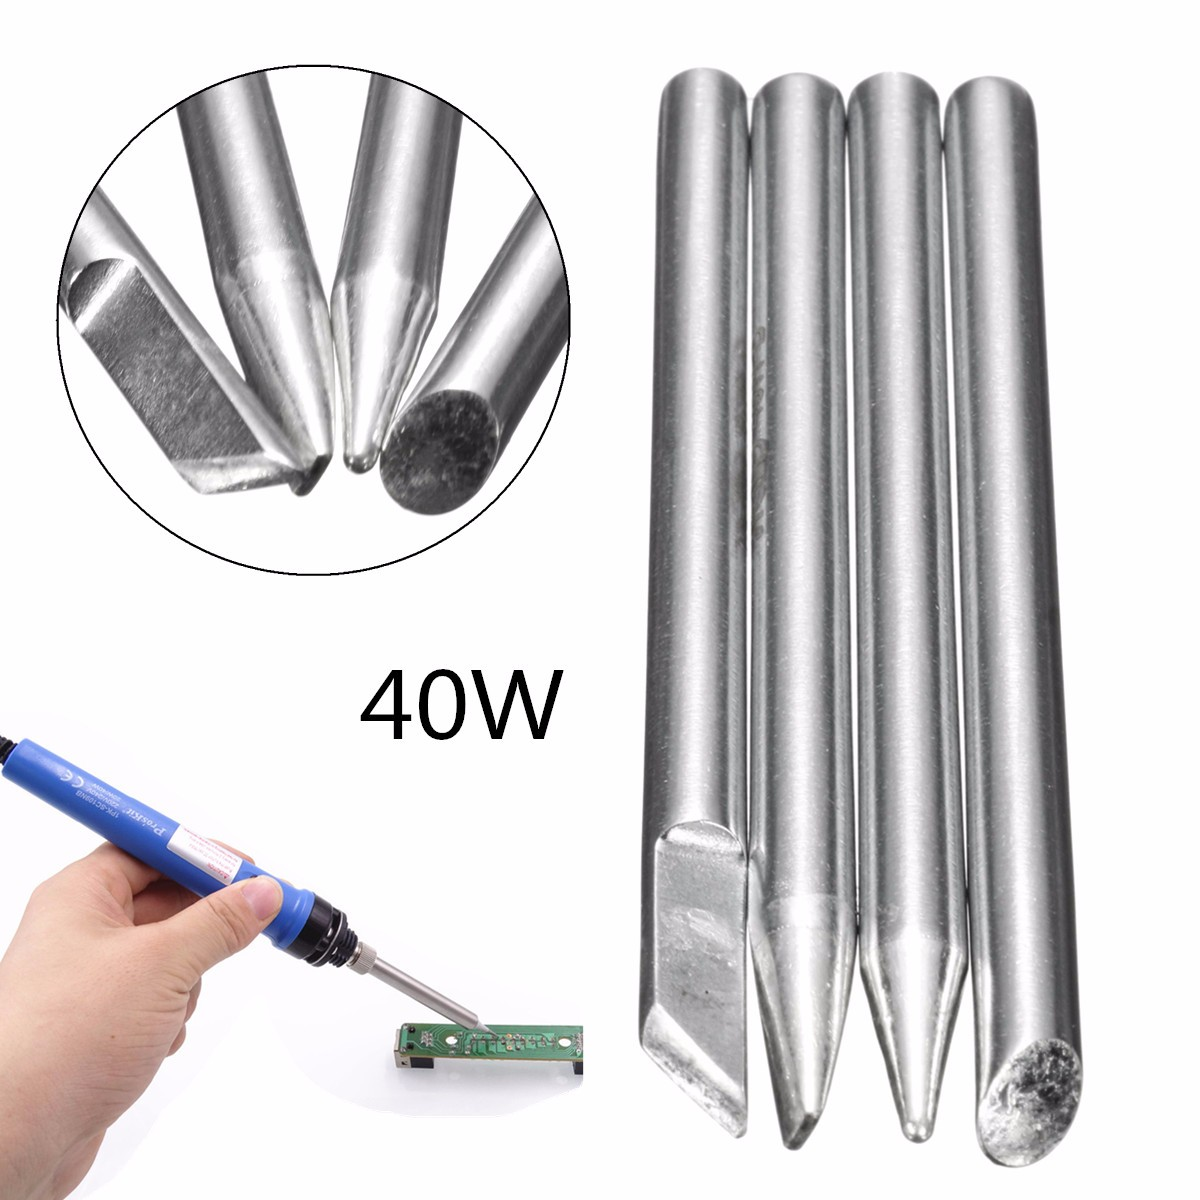 4pcs electric soldering iron tips head replaceable 4mm shank for 40w solder i. Black Bedroom Furniture Sets. Home Design Ideas